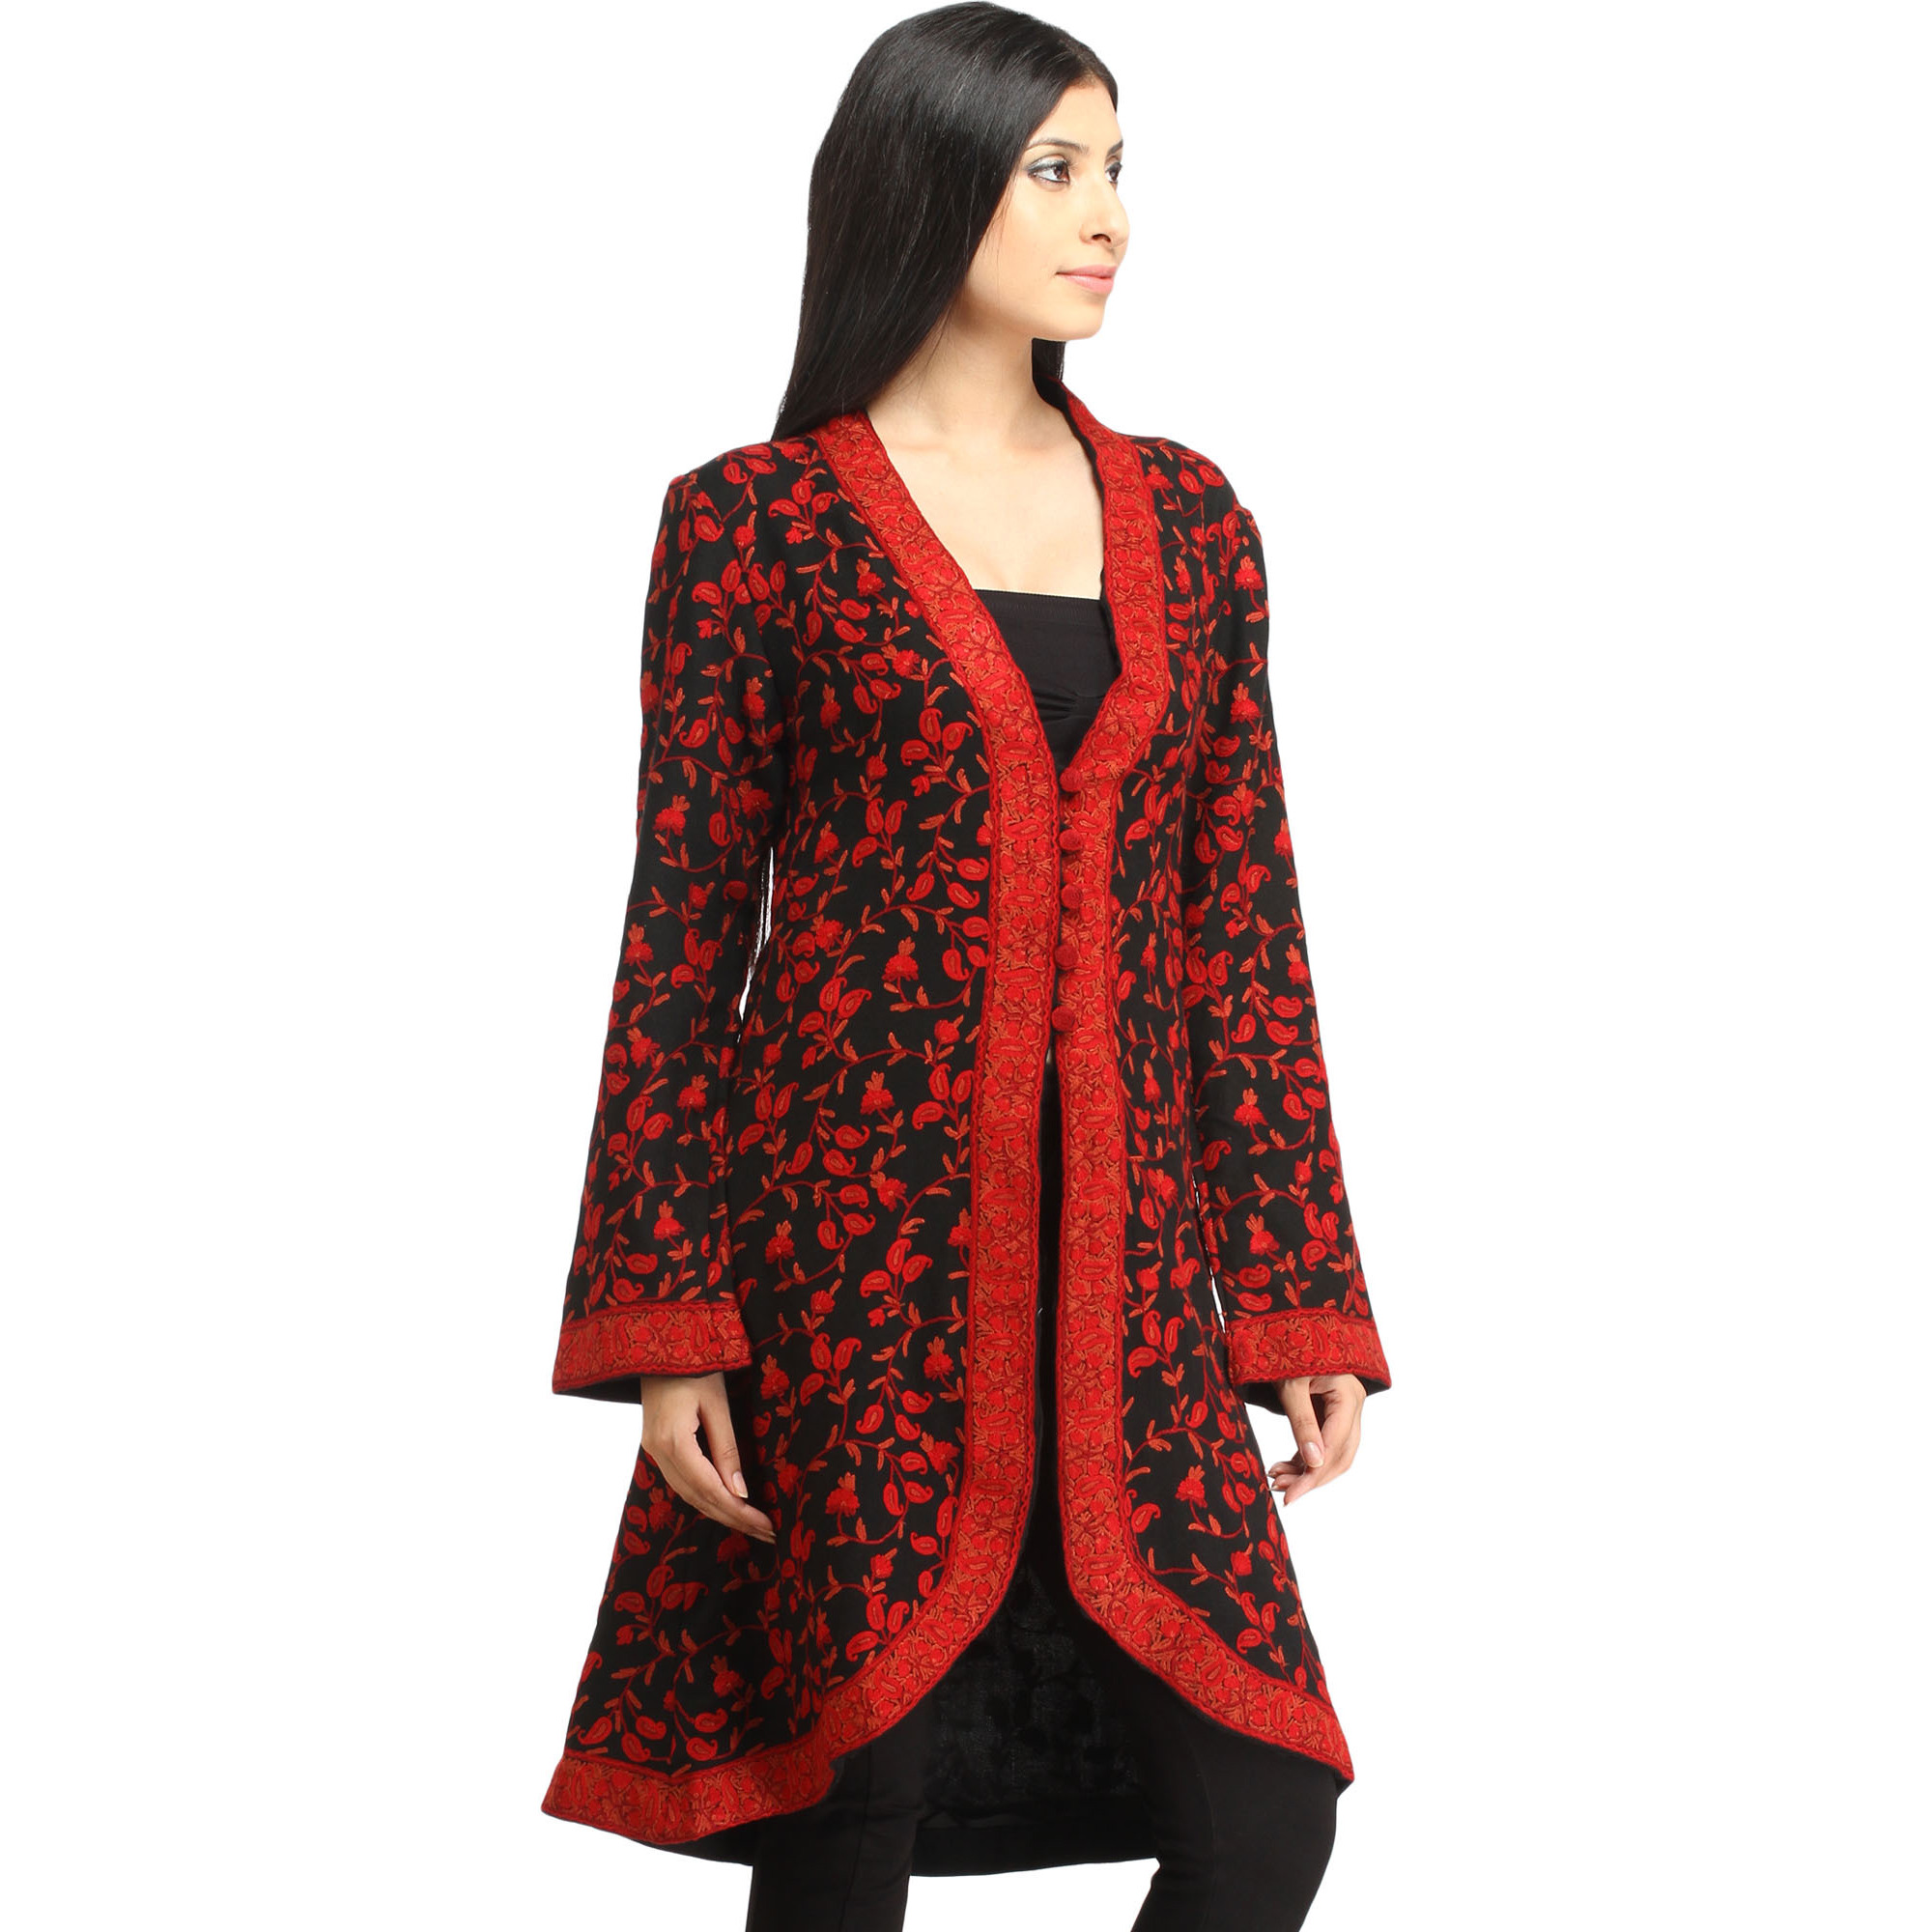 Black and Red Long Jacket from Kashmir with Ari Hand-Embroidered Paisleys